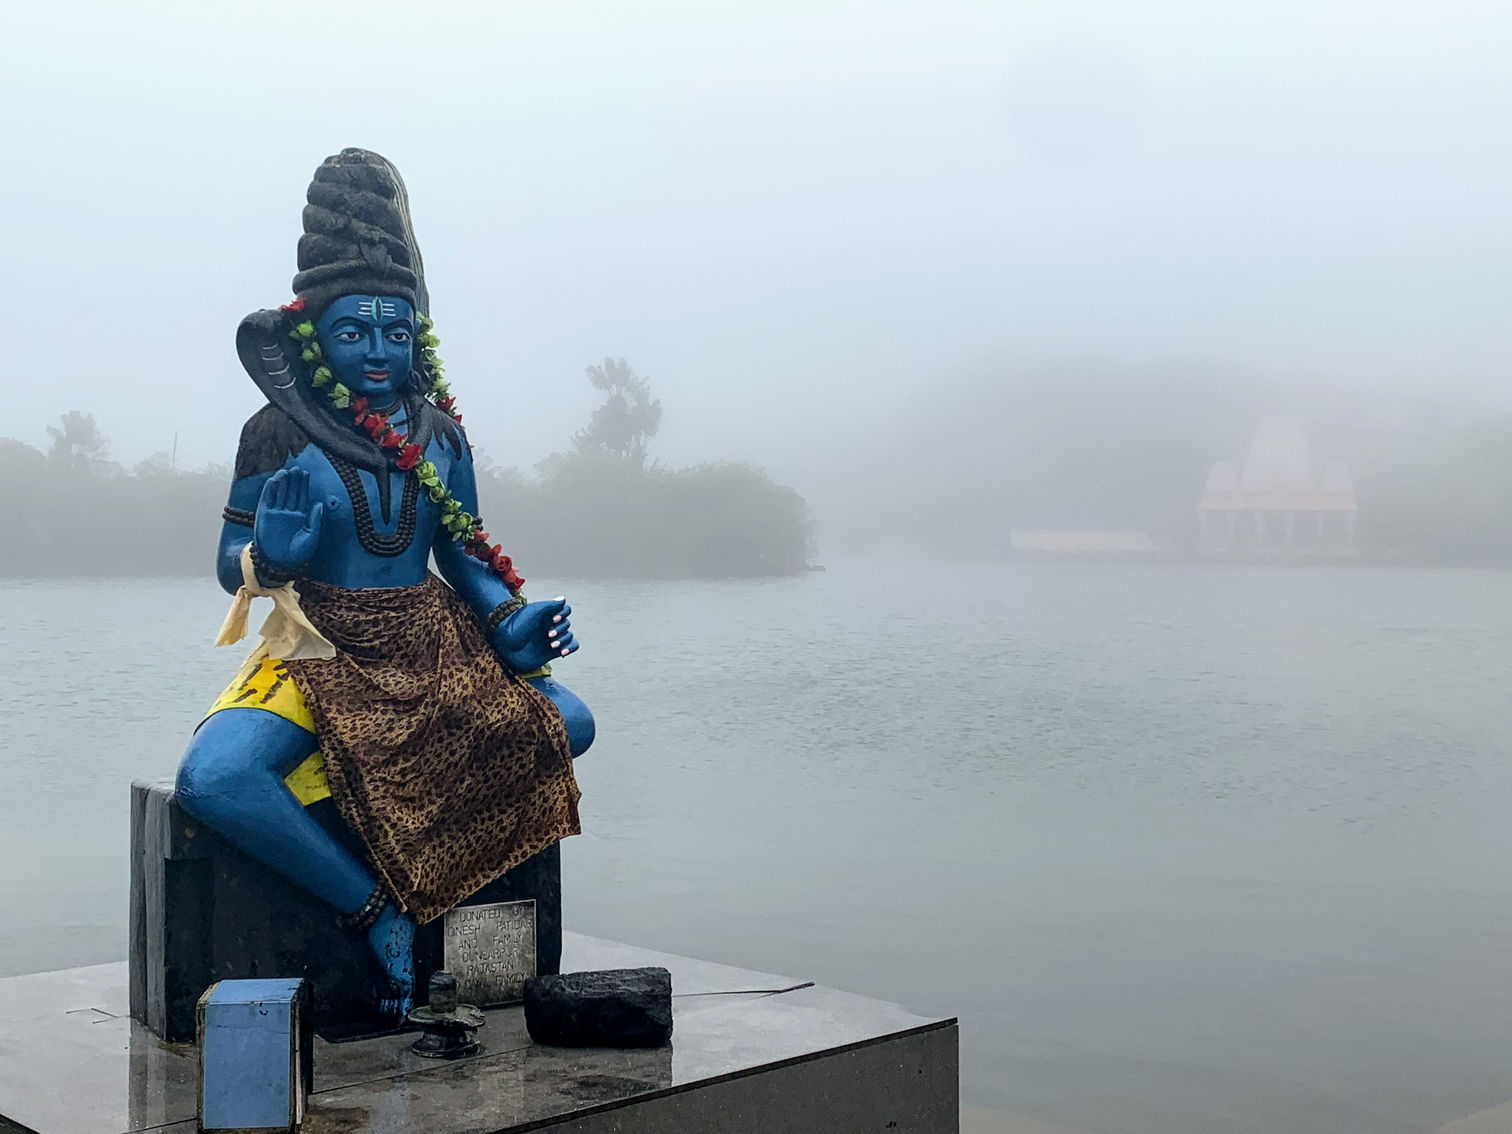 Statue of a Hindu deity at Grand Bassin in heavy rain conditions